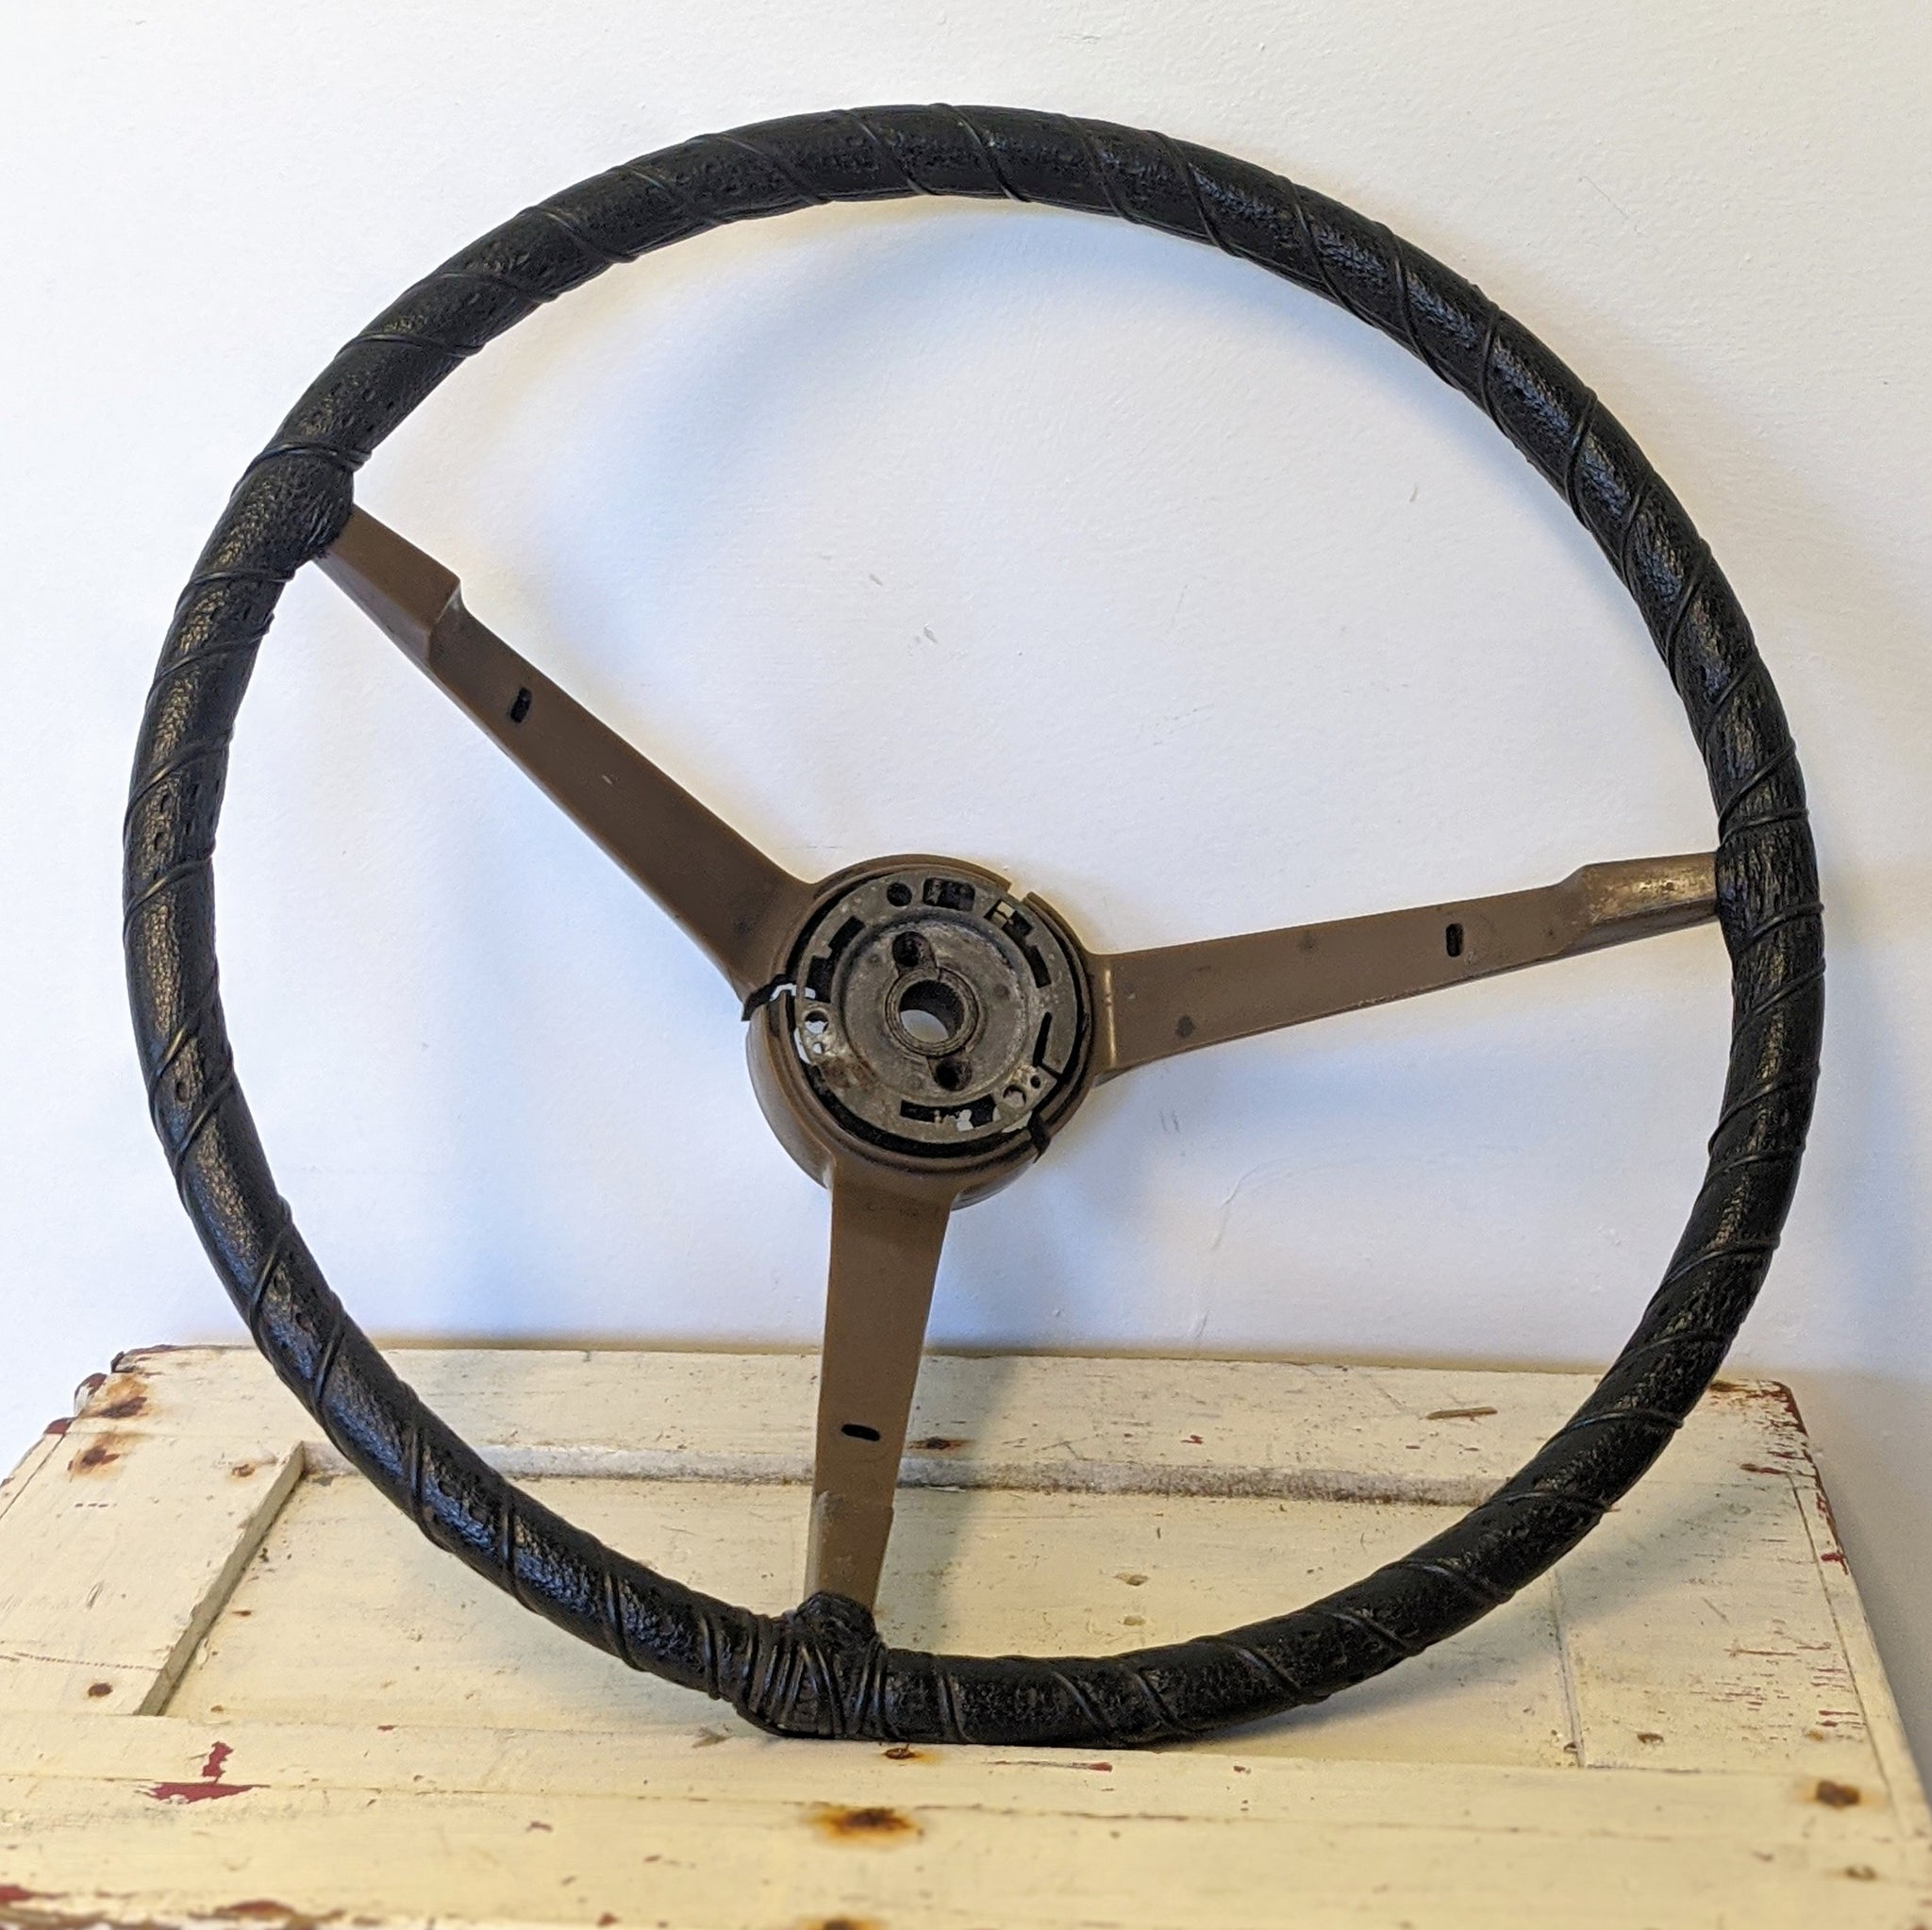 Black and brown vintage hot rod car wheel